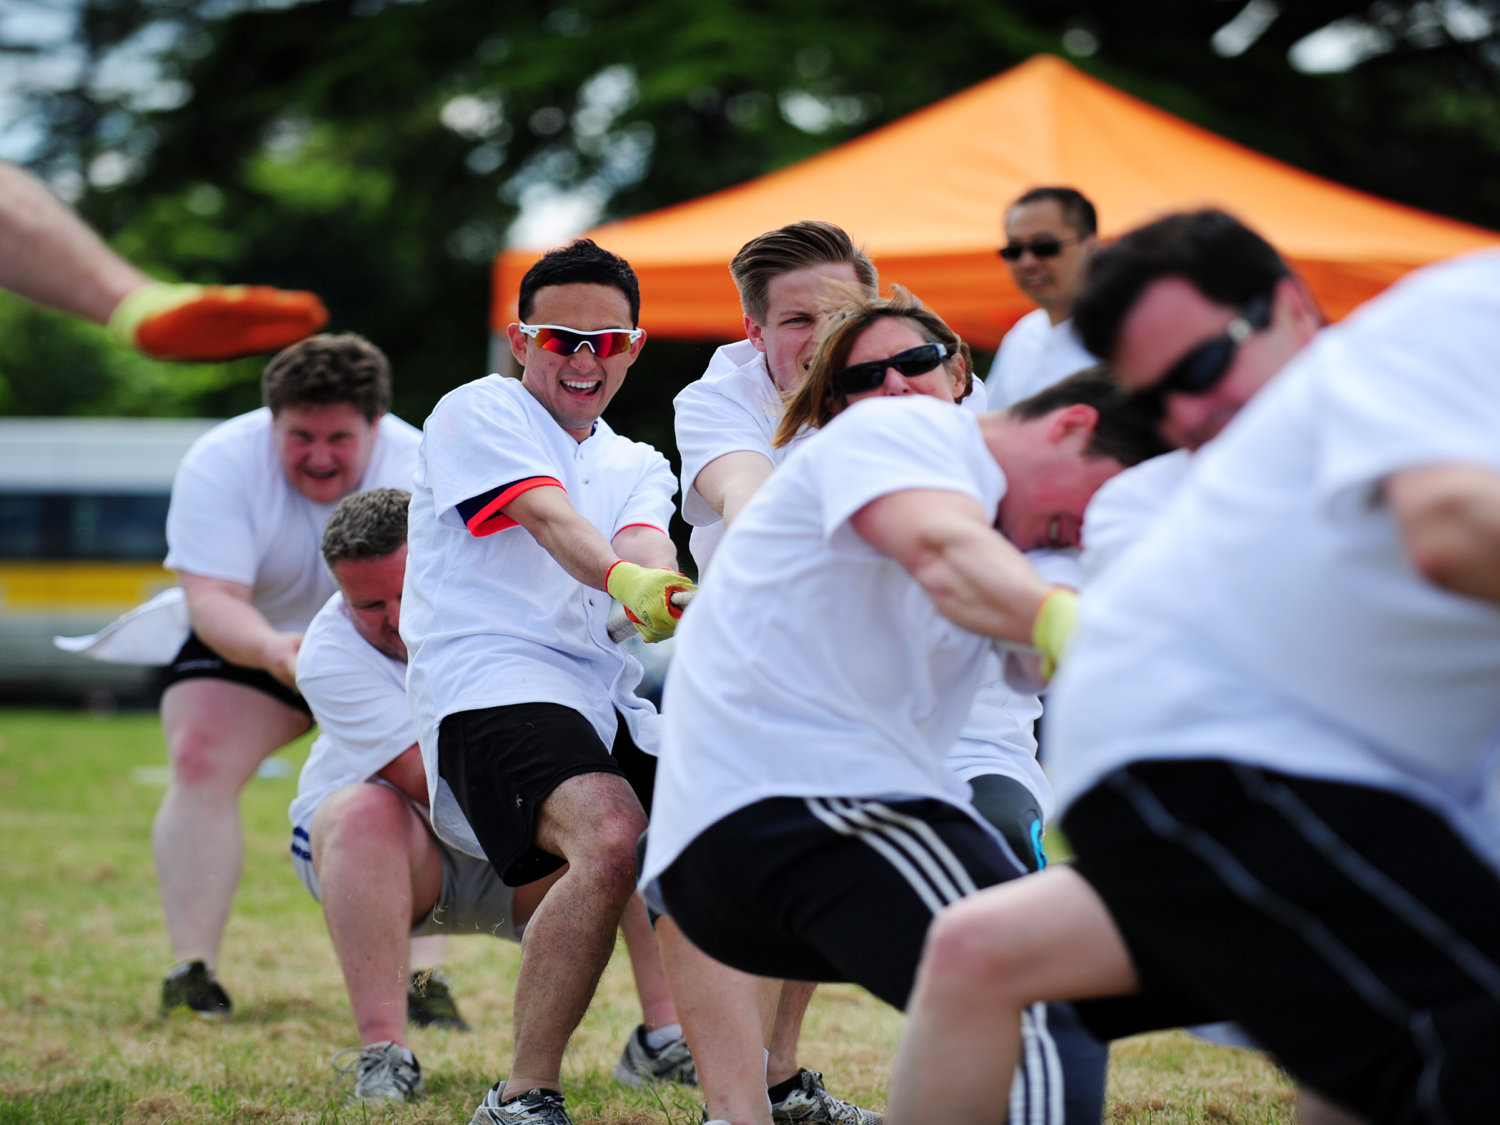 Team-Building or Team-Destroying? How To Boosts Positive Competition